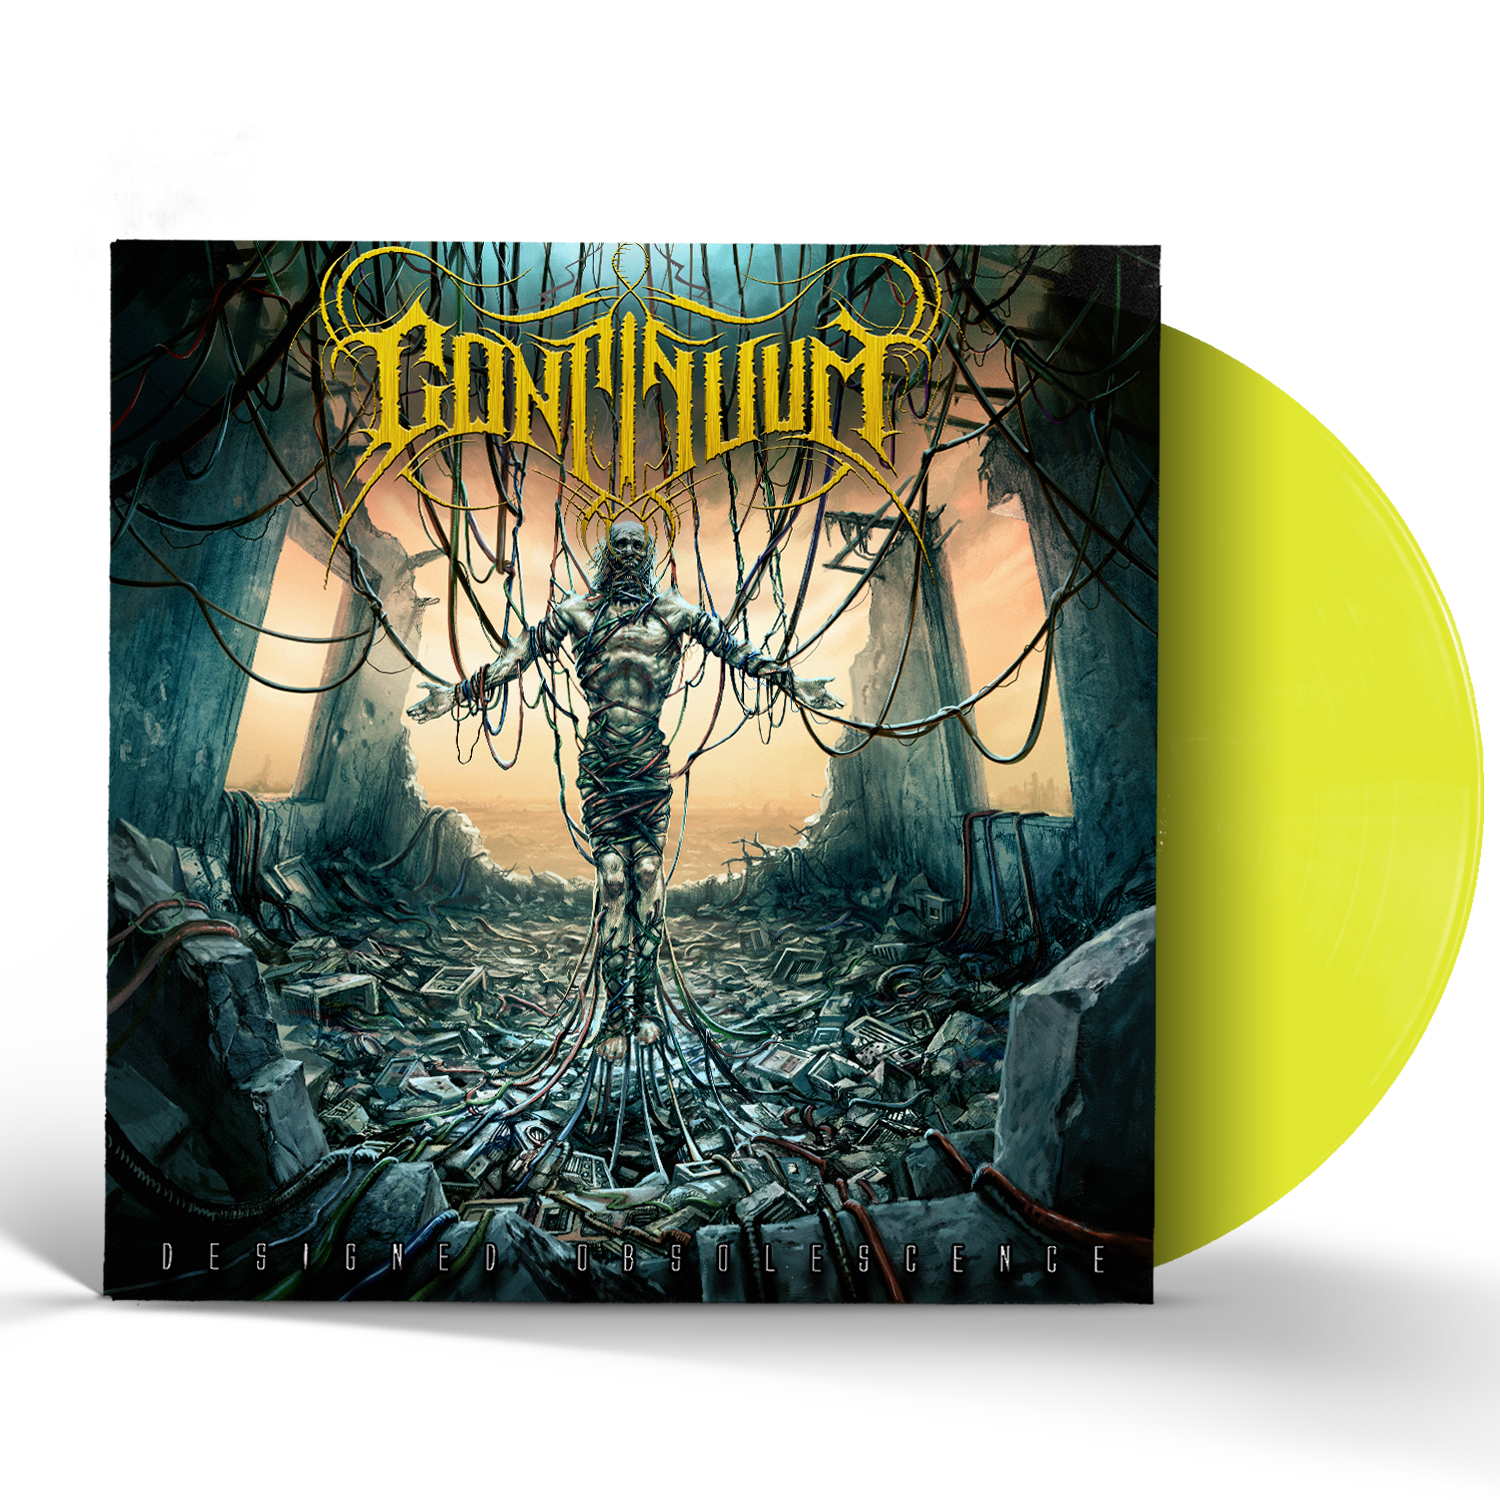 Designed Obsolescence Flo Yellow LP